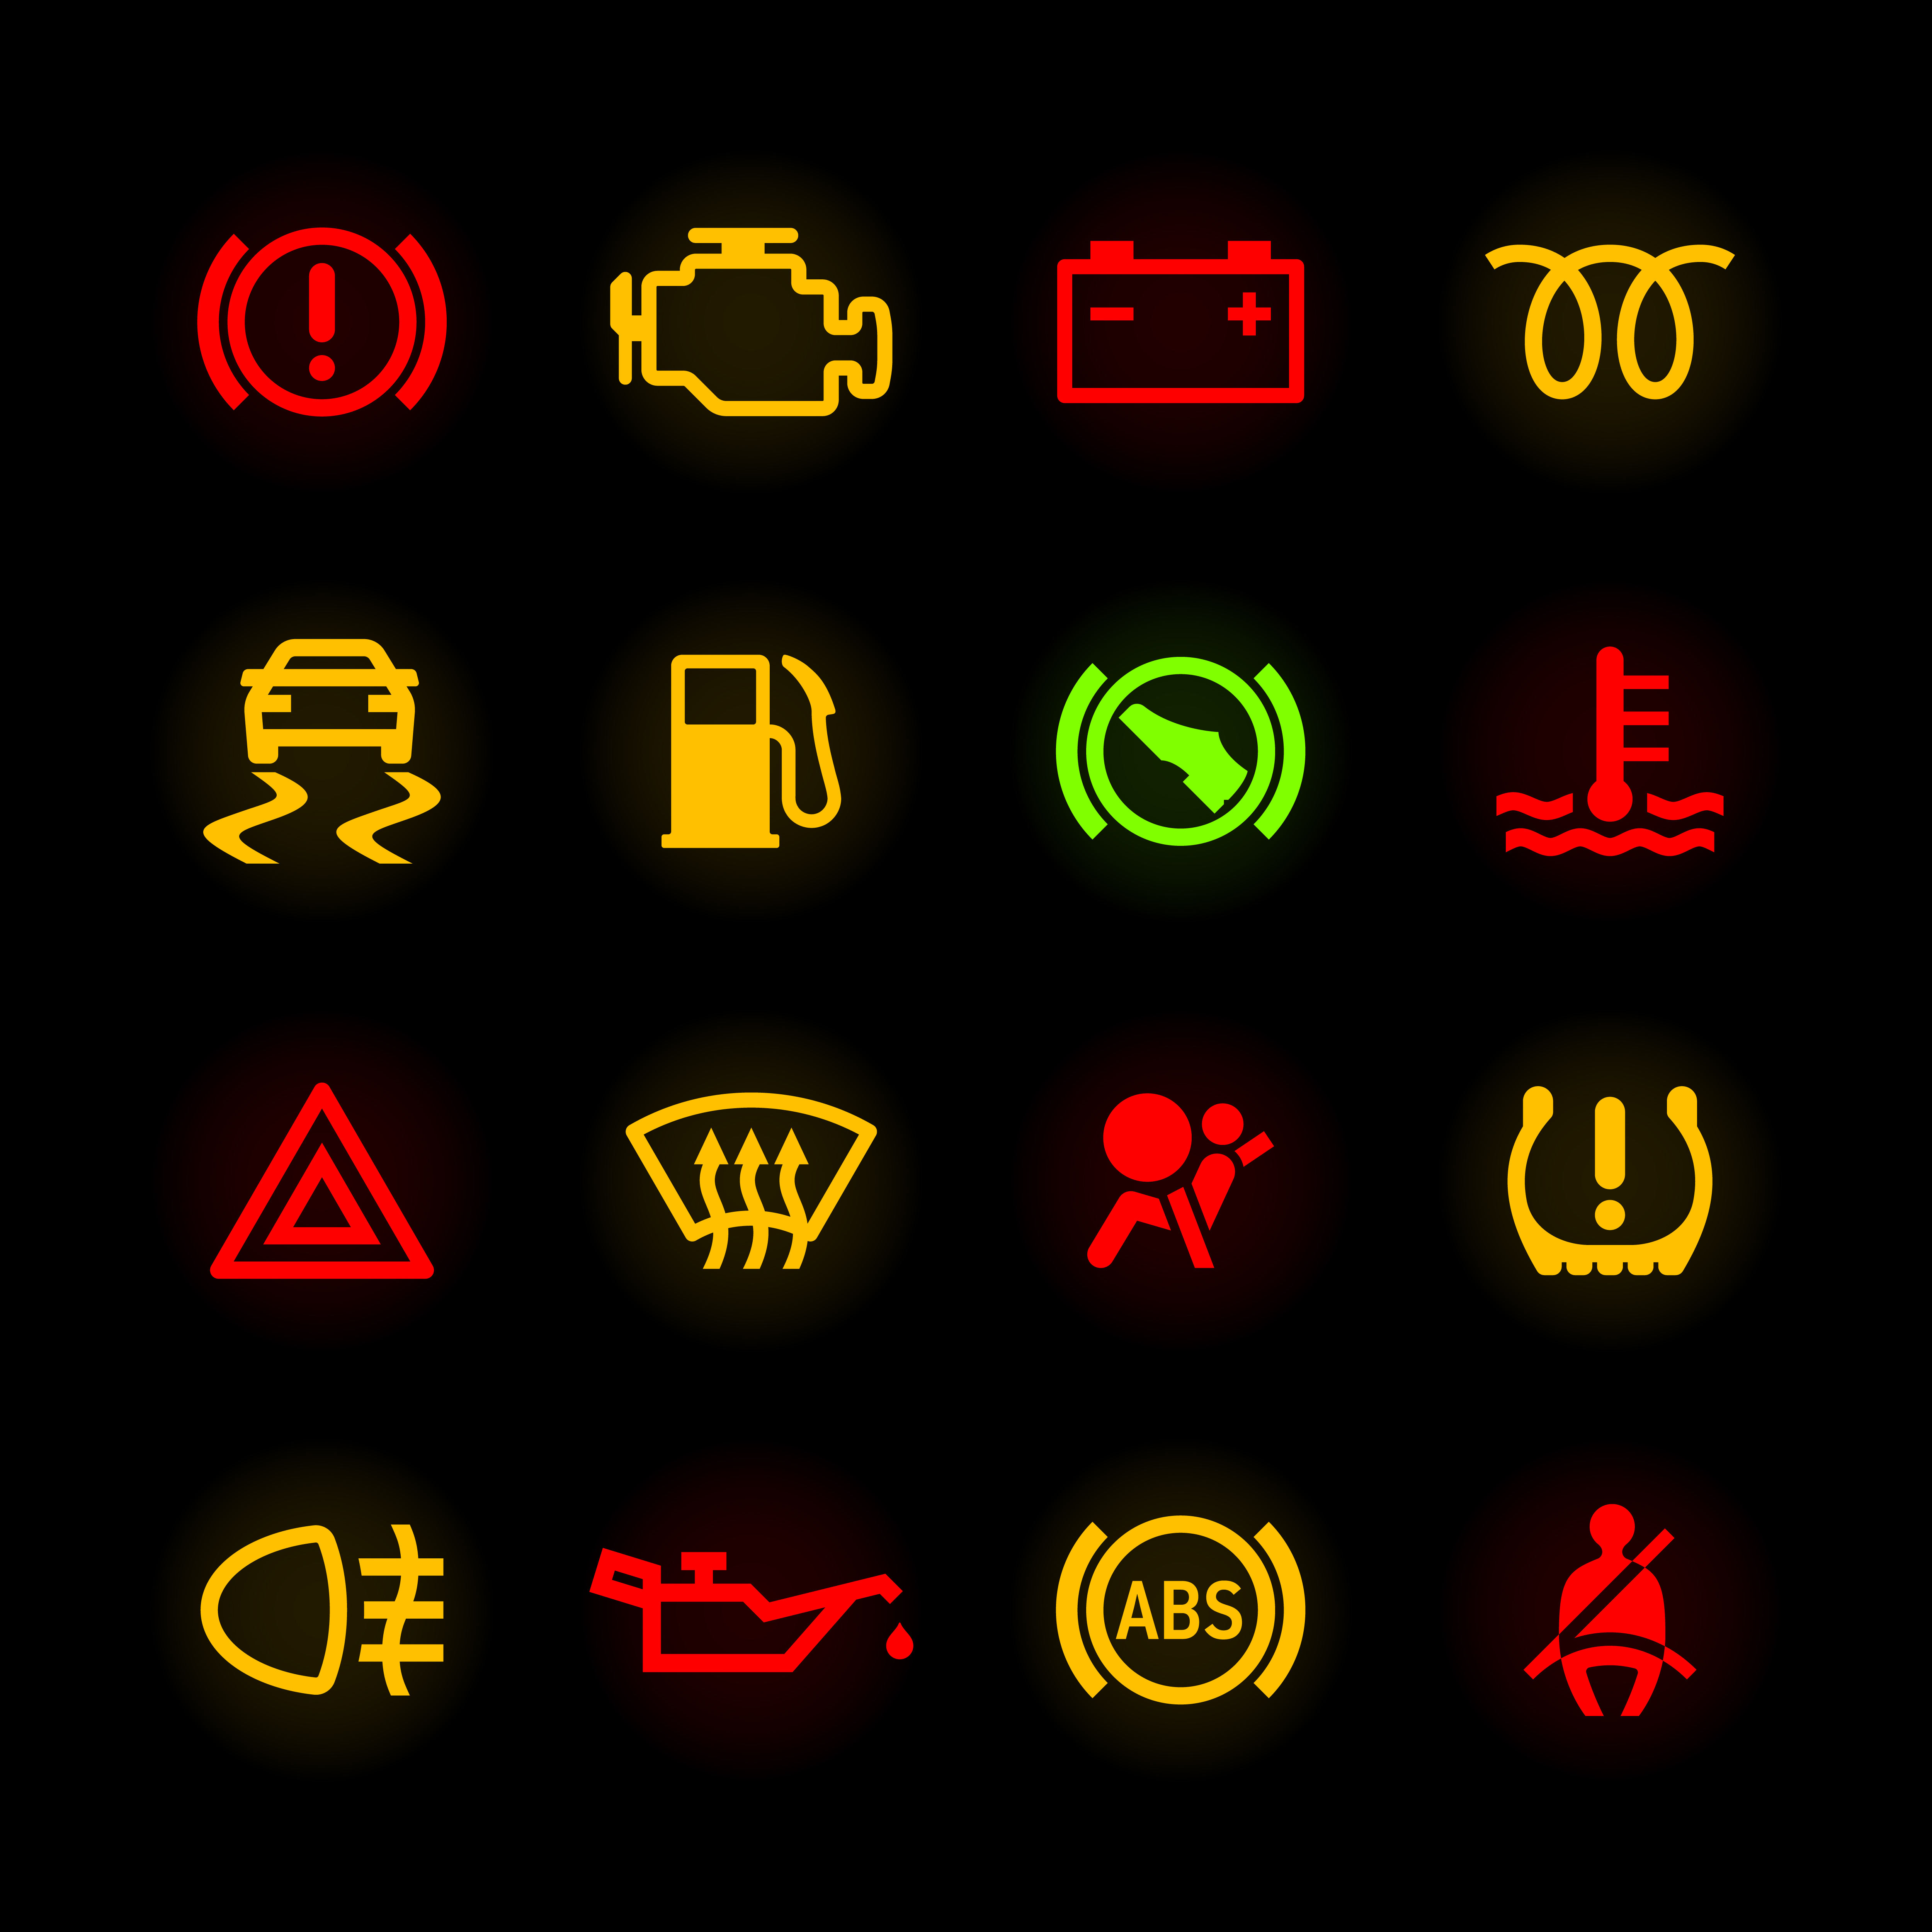 You can crack the dashboard lights code hong kong auto service dashboasrdshutterstock185072642 biocorpaavc Image collections